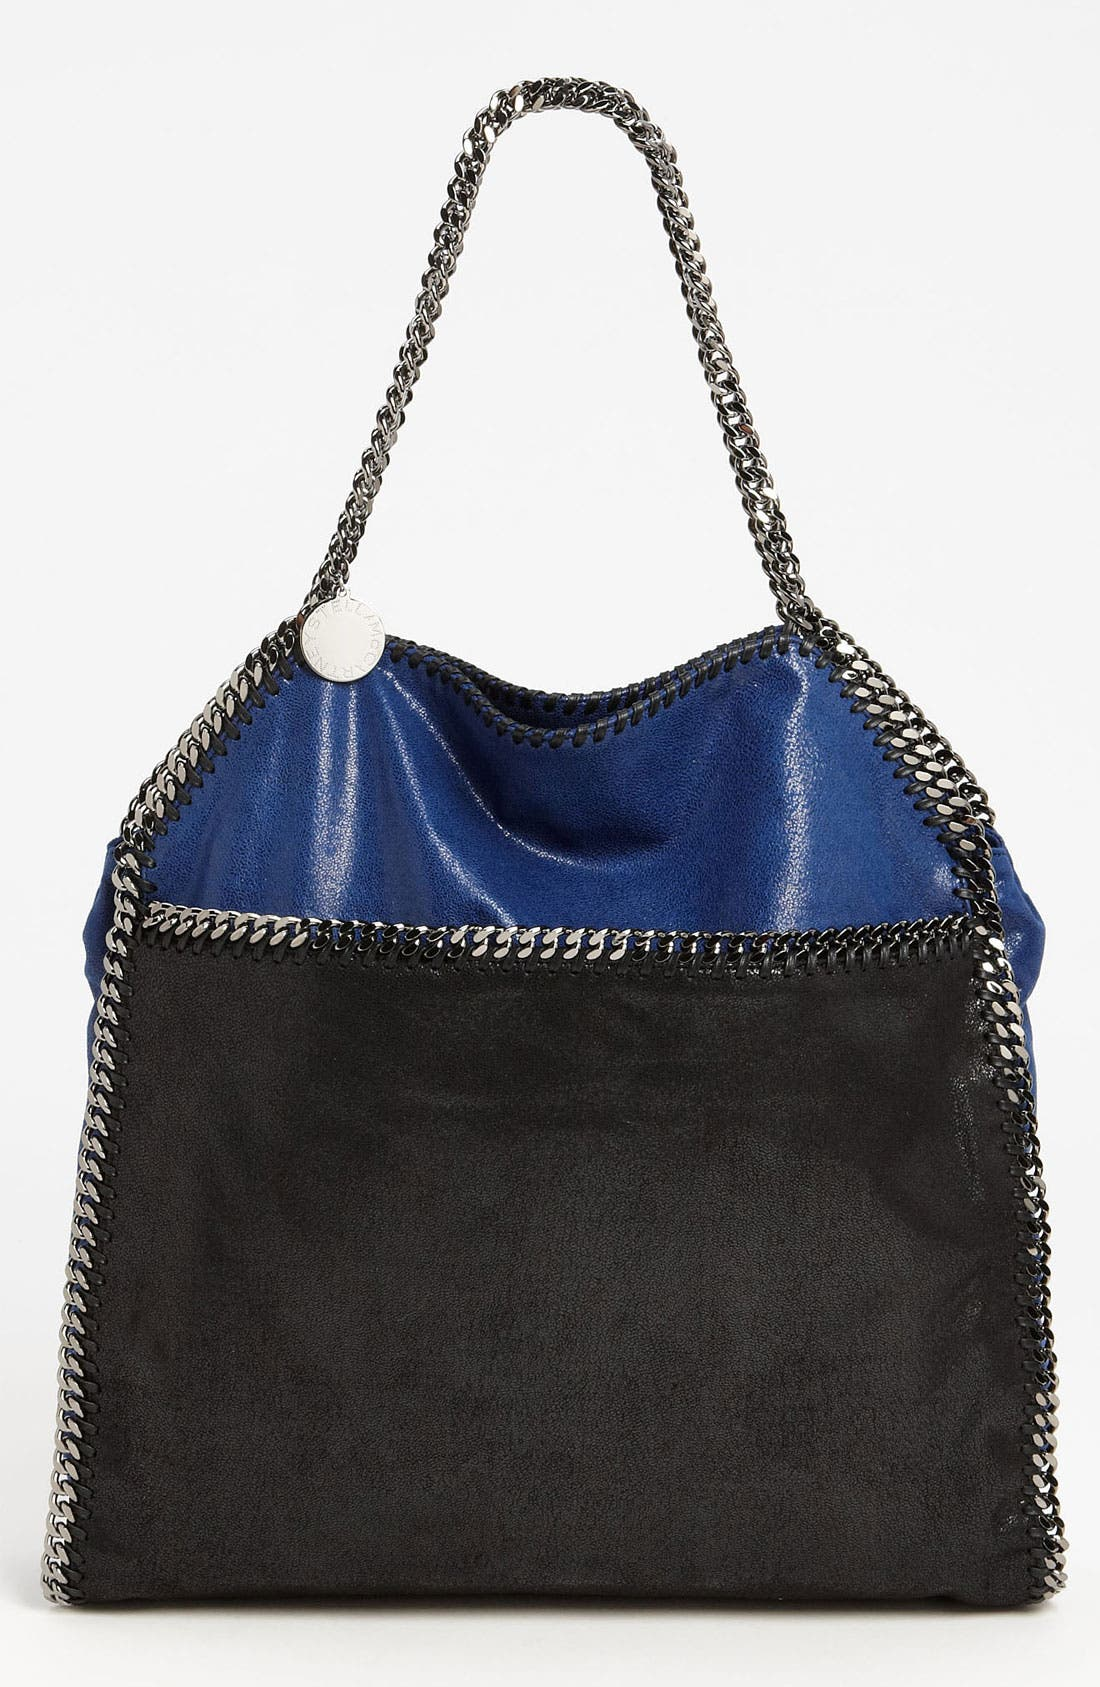 Alternate Image 1 Selected - Stella McCartney 'Falabella - Large' Shaggy Deer Tote